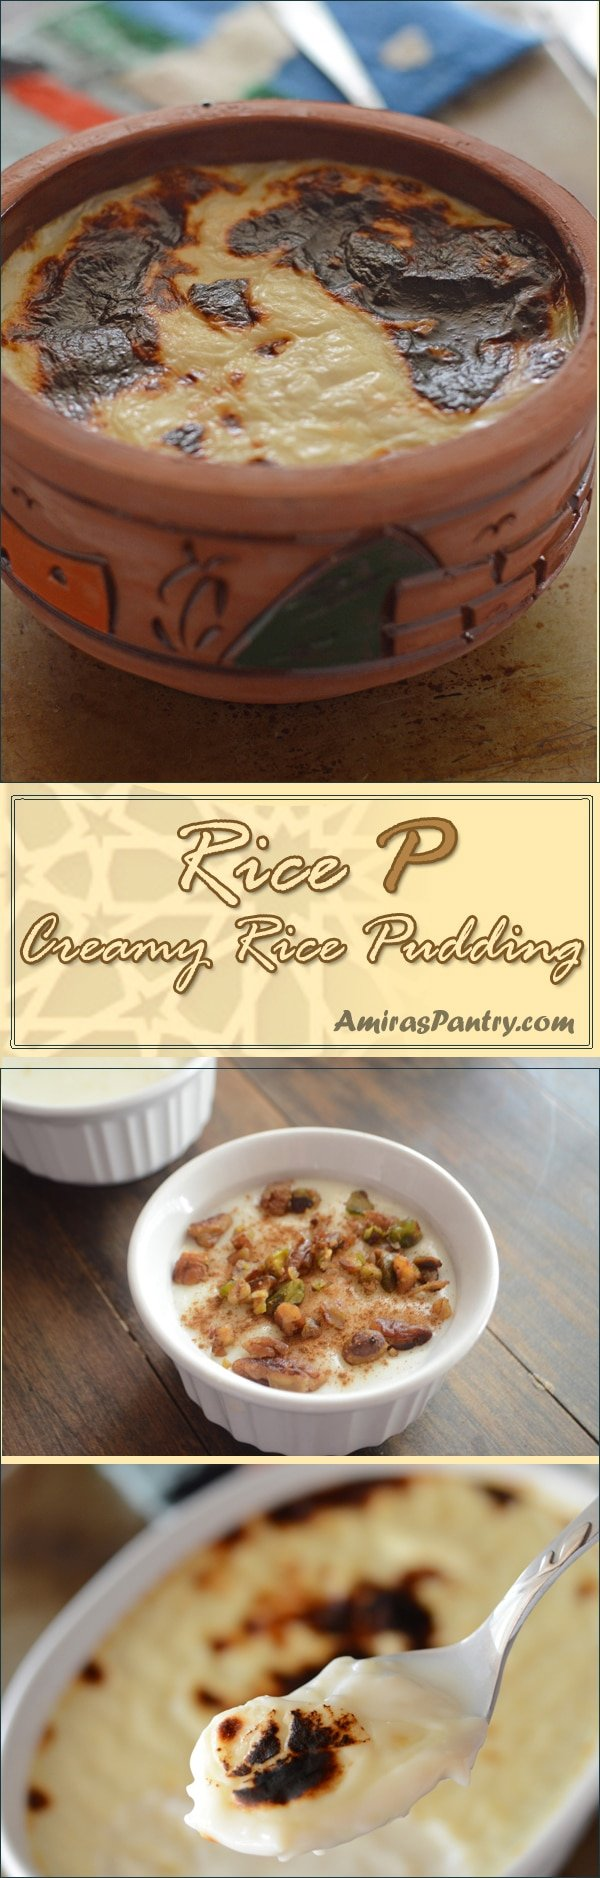 Incredibly creamy rice pudding, very tender and rich. This is a very simple rice pudding recipe that is great for entertaining a large crowd.